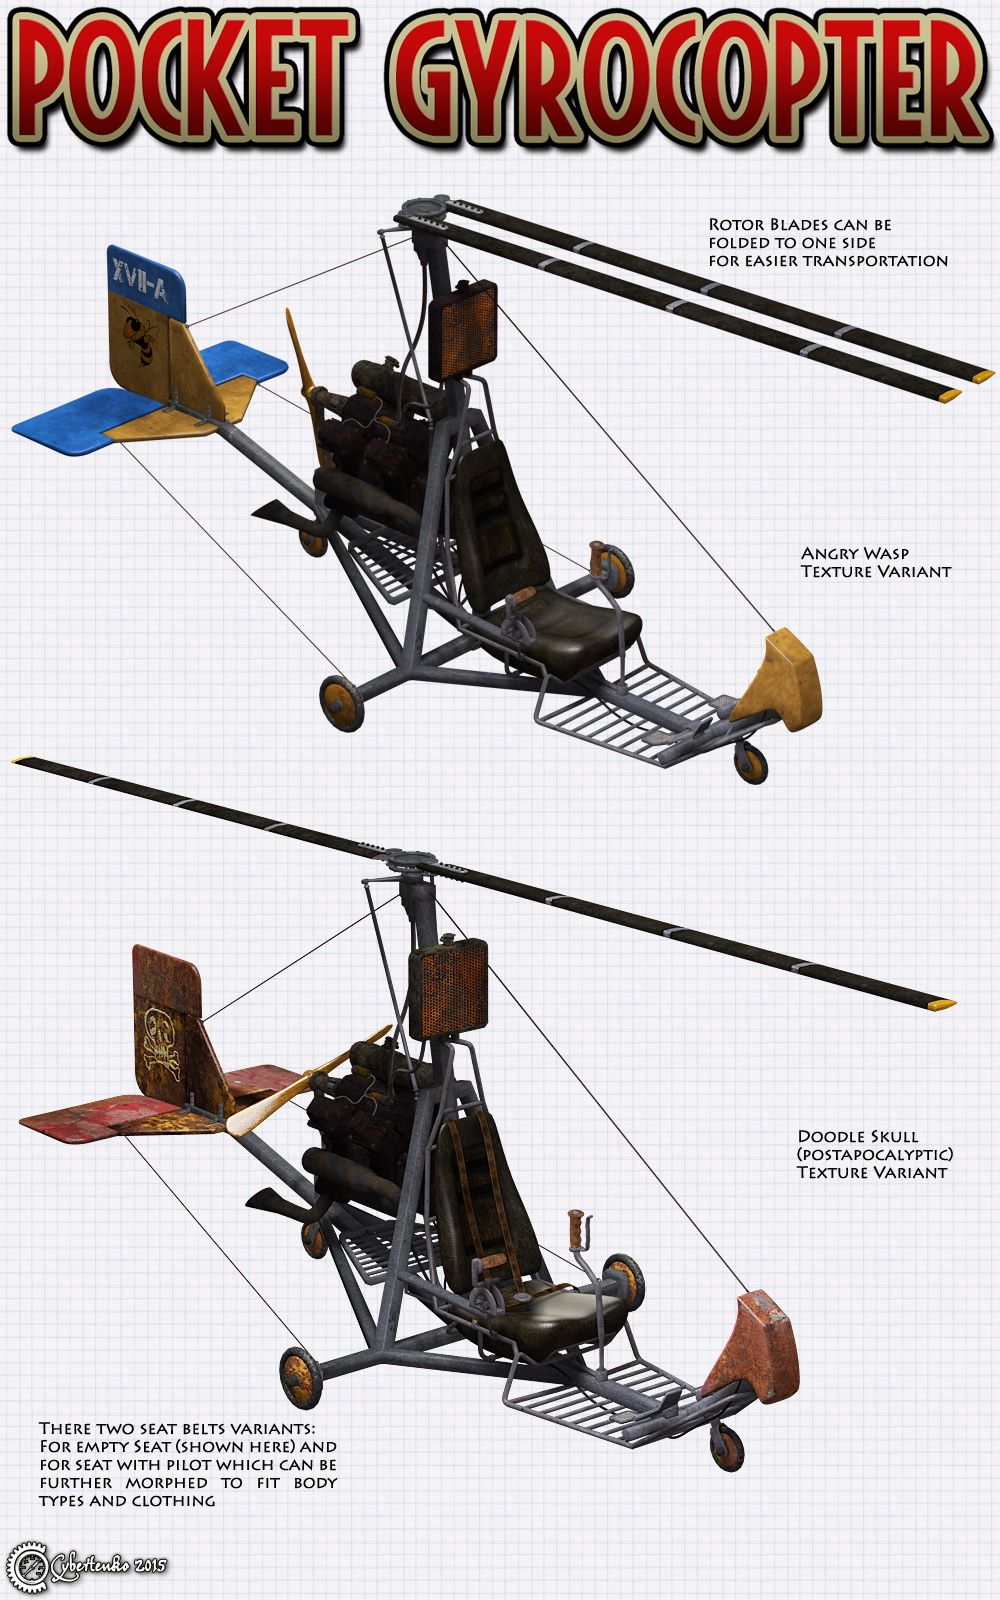 Gyrocopter, rotaplane or autogyro is an aircraft which uses